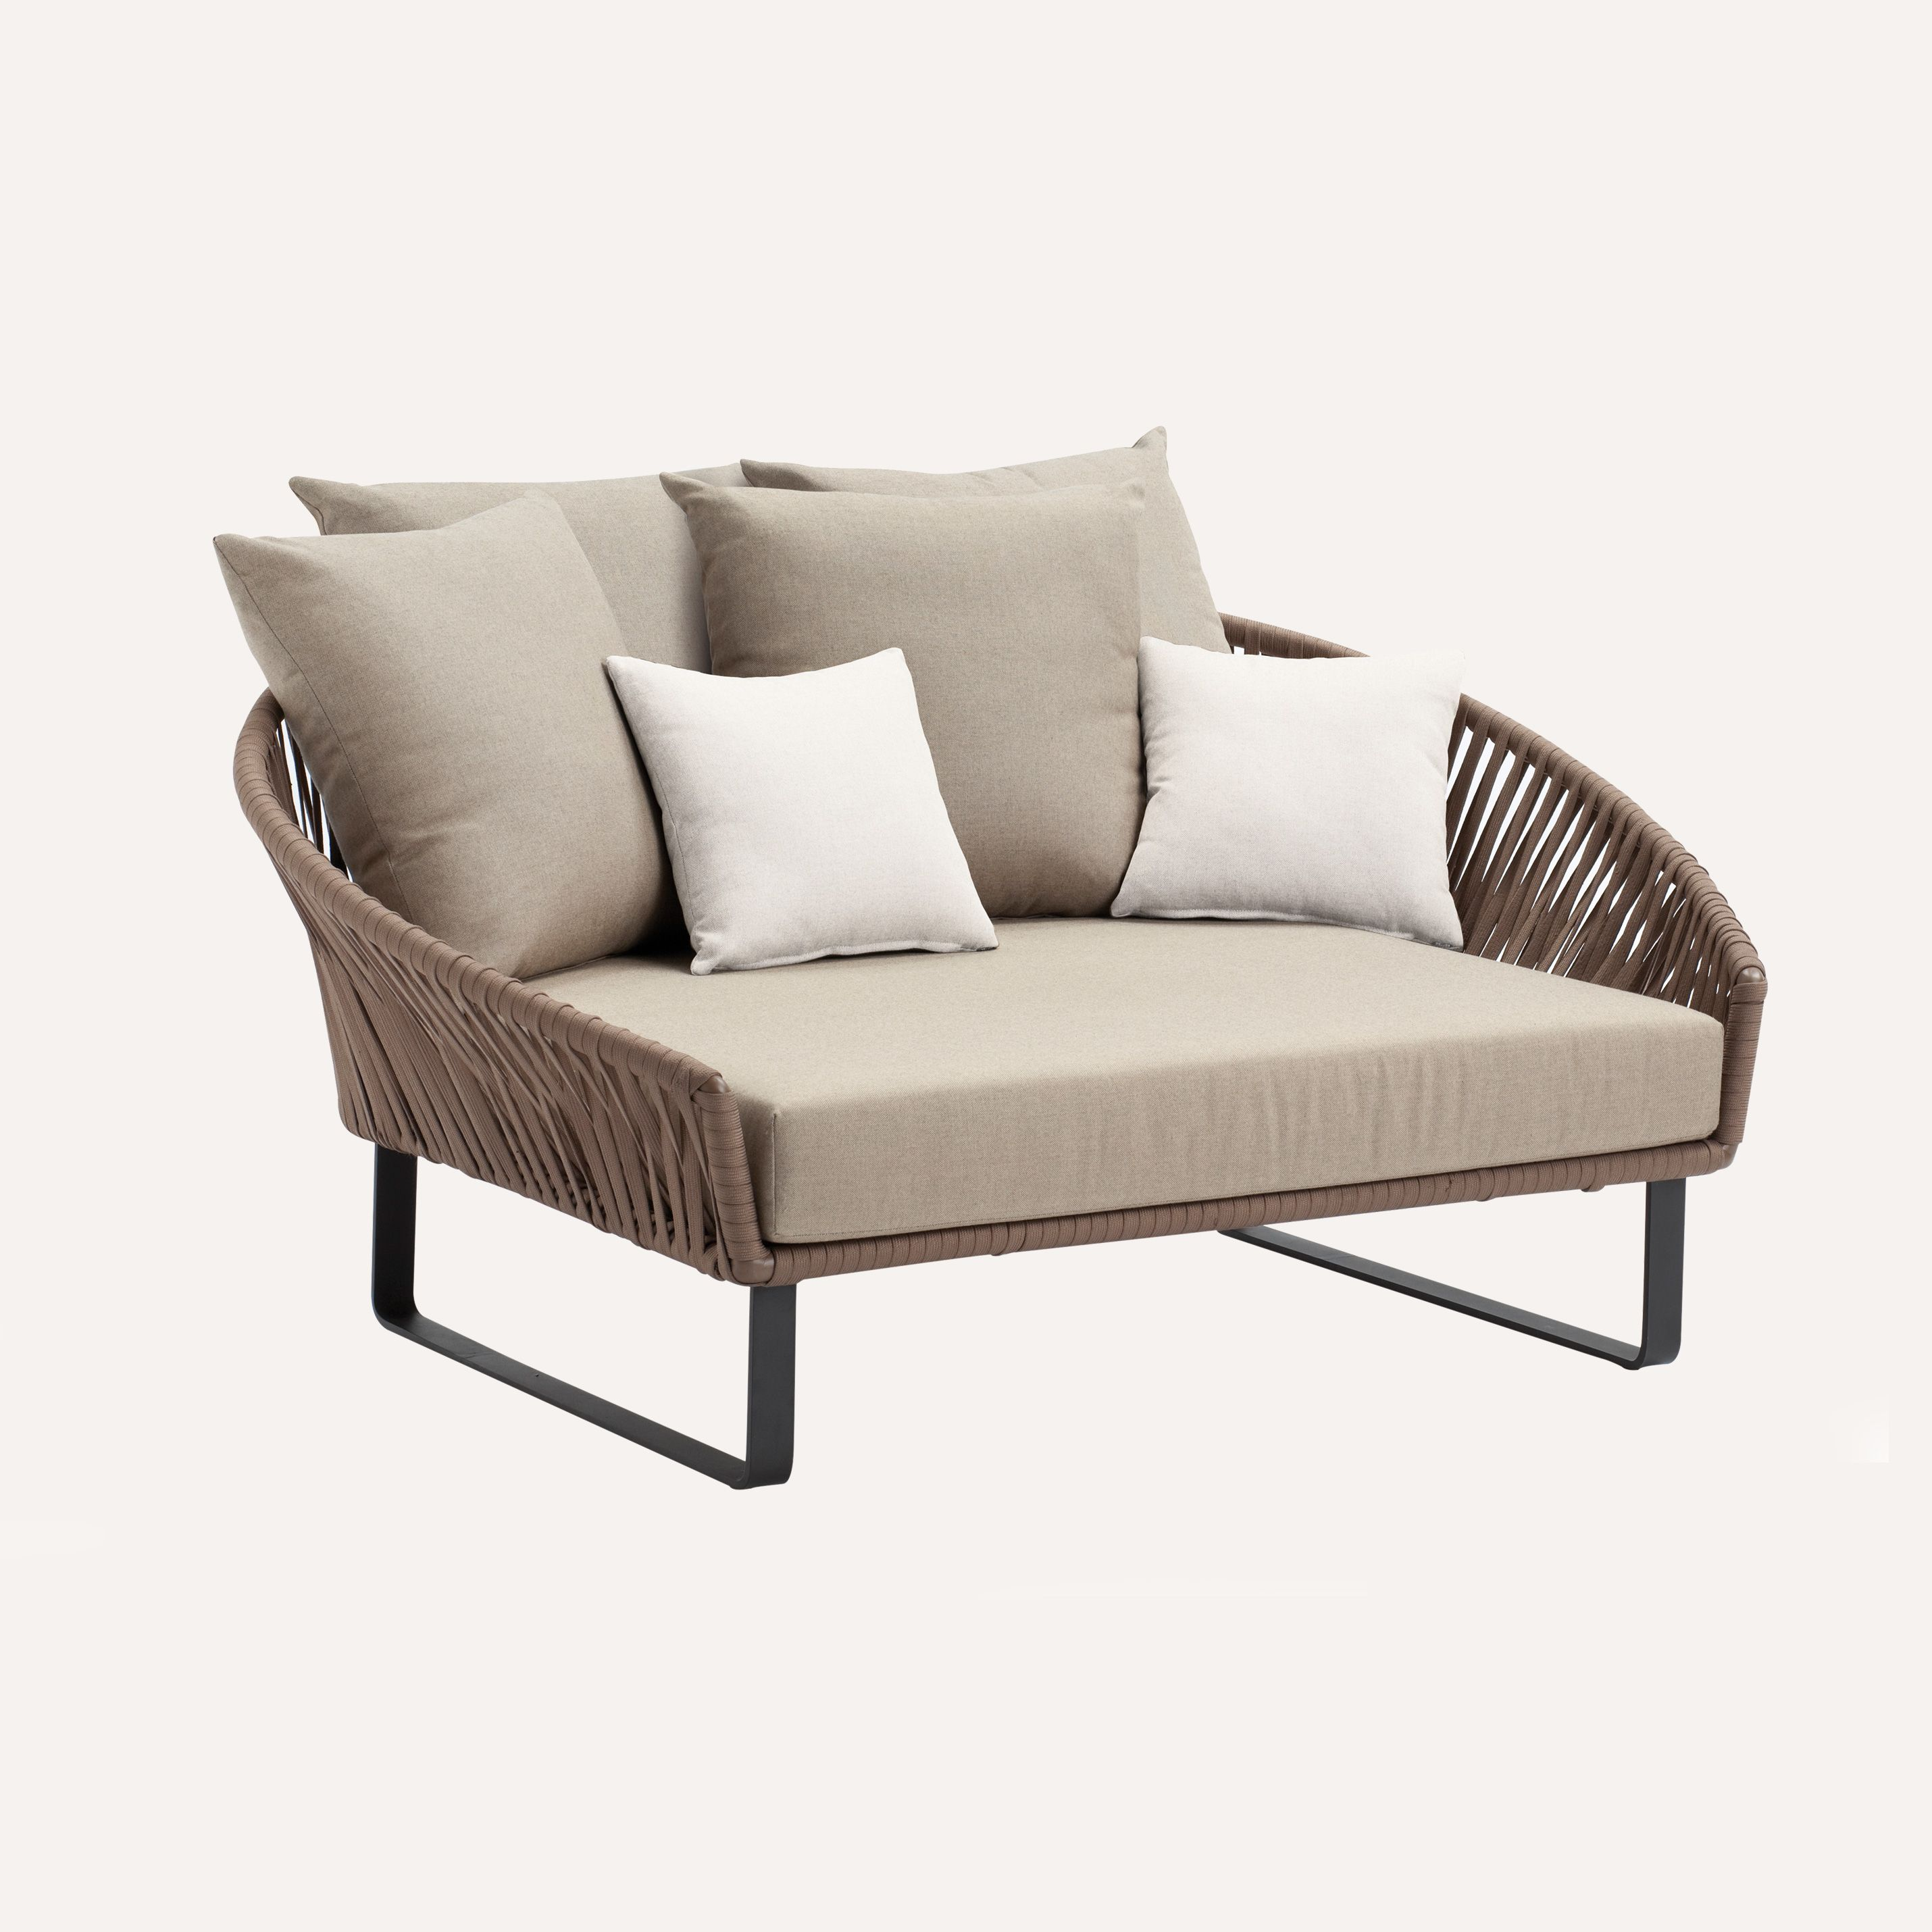 Kettal bitta daybed products muebles muebles de for Kettal muebles